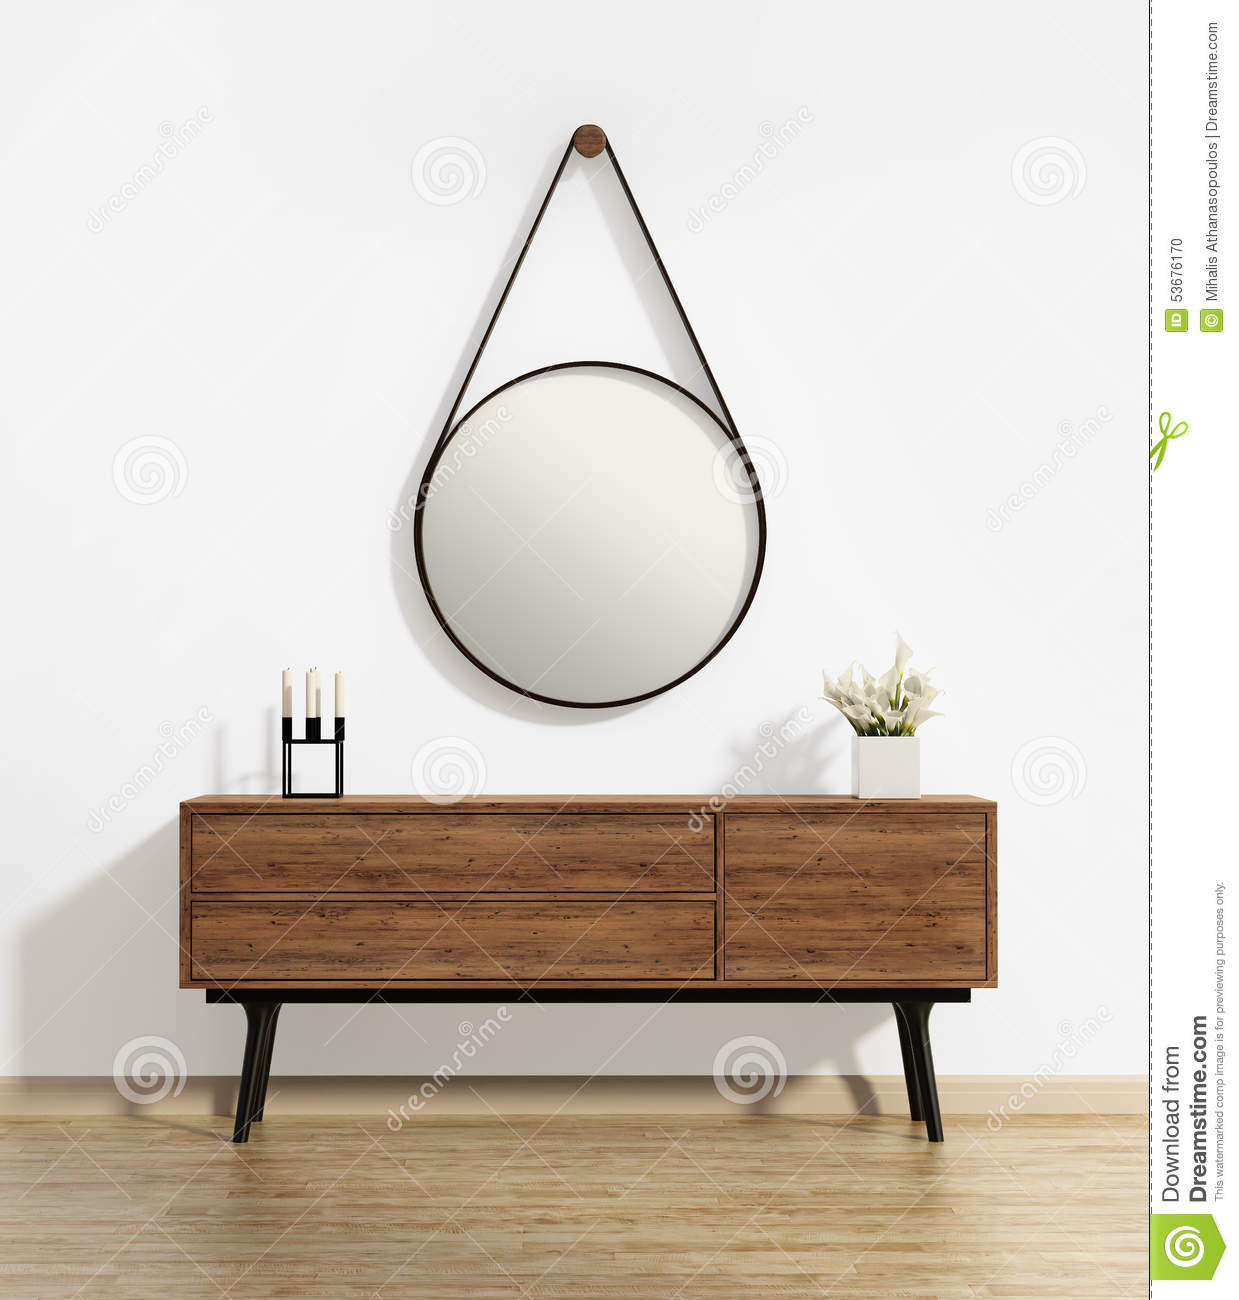 Console Table With Captains Round Mirror Stock Photo Image 53676170